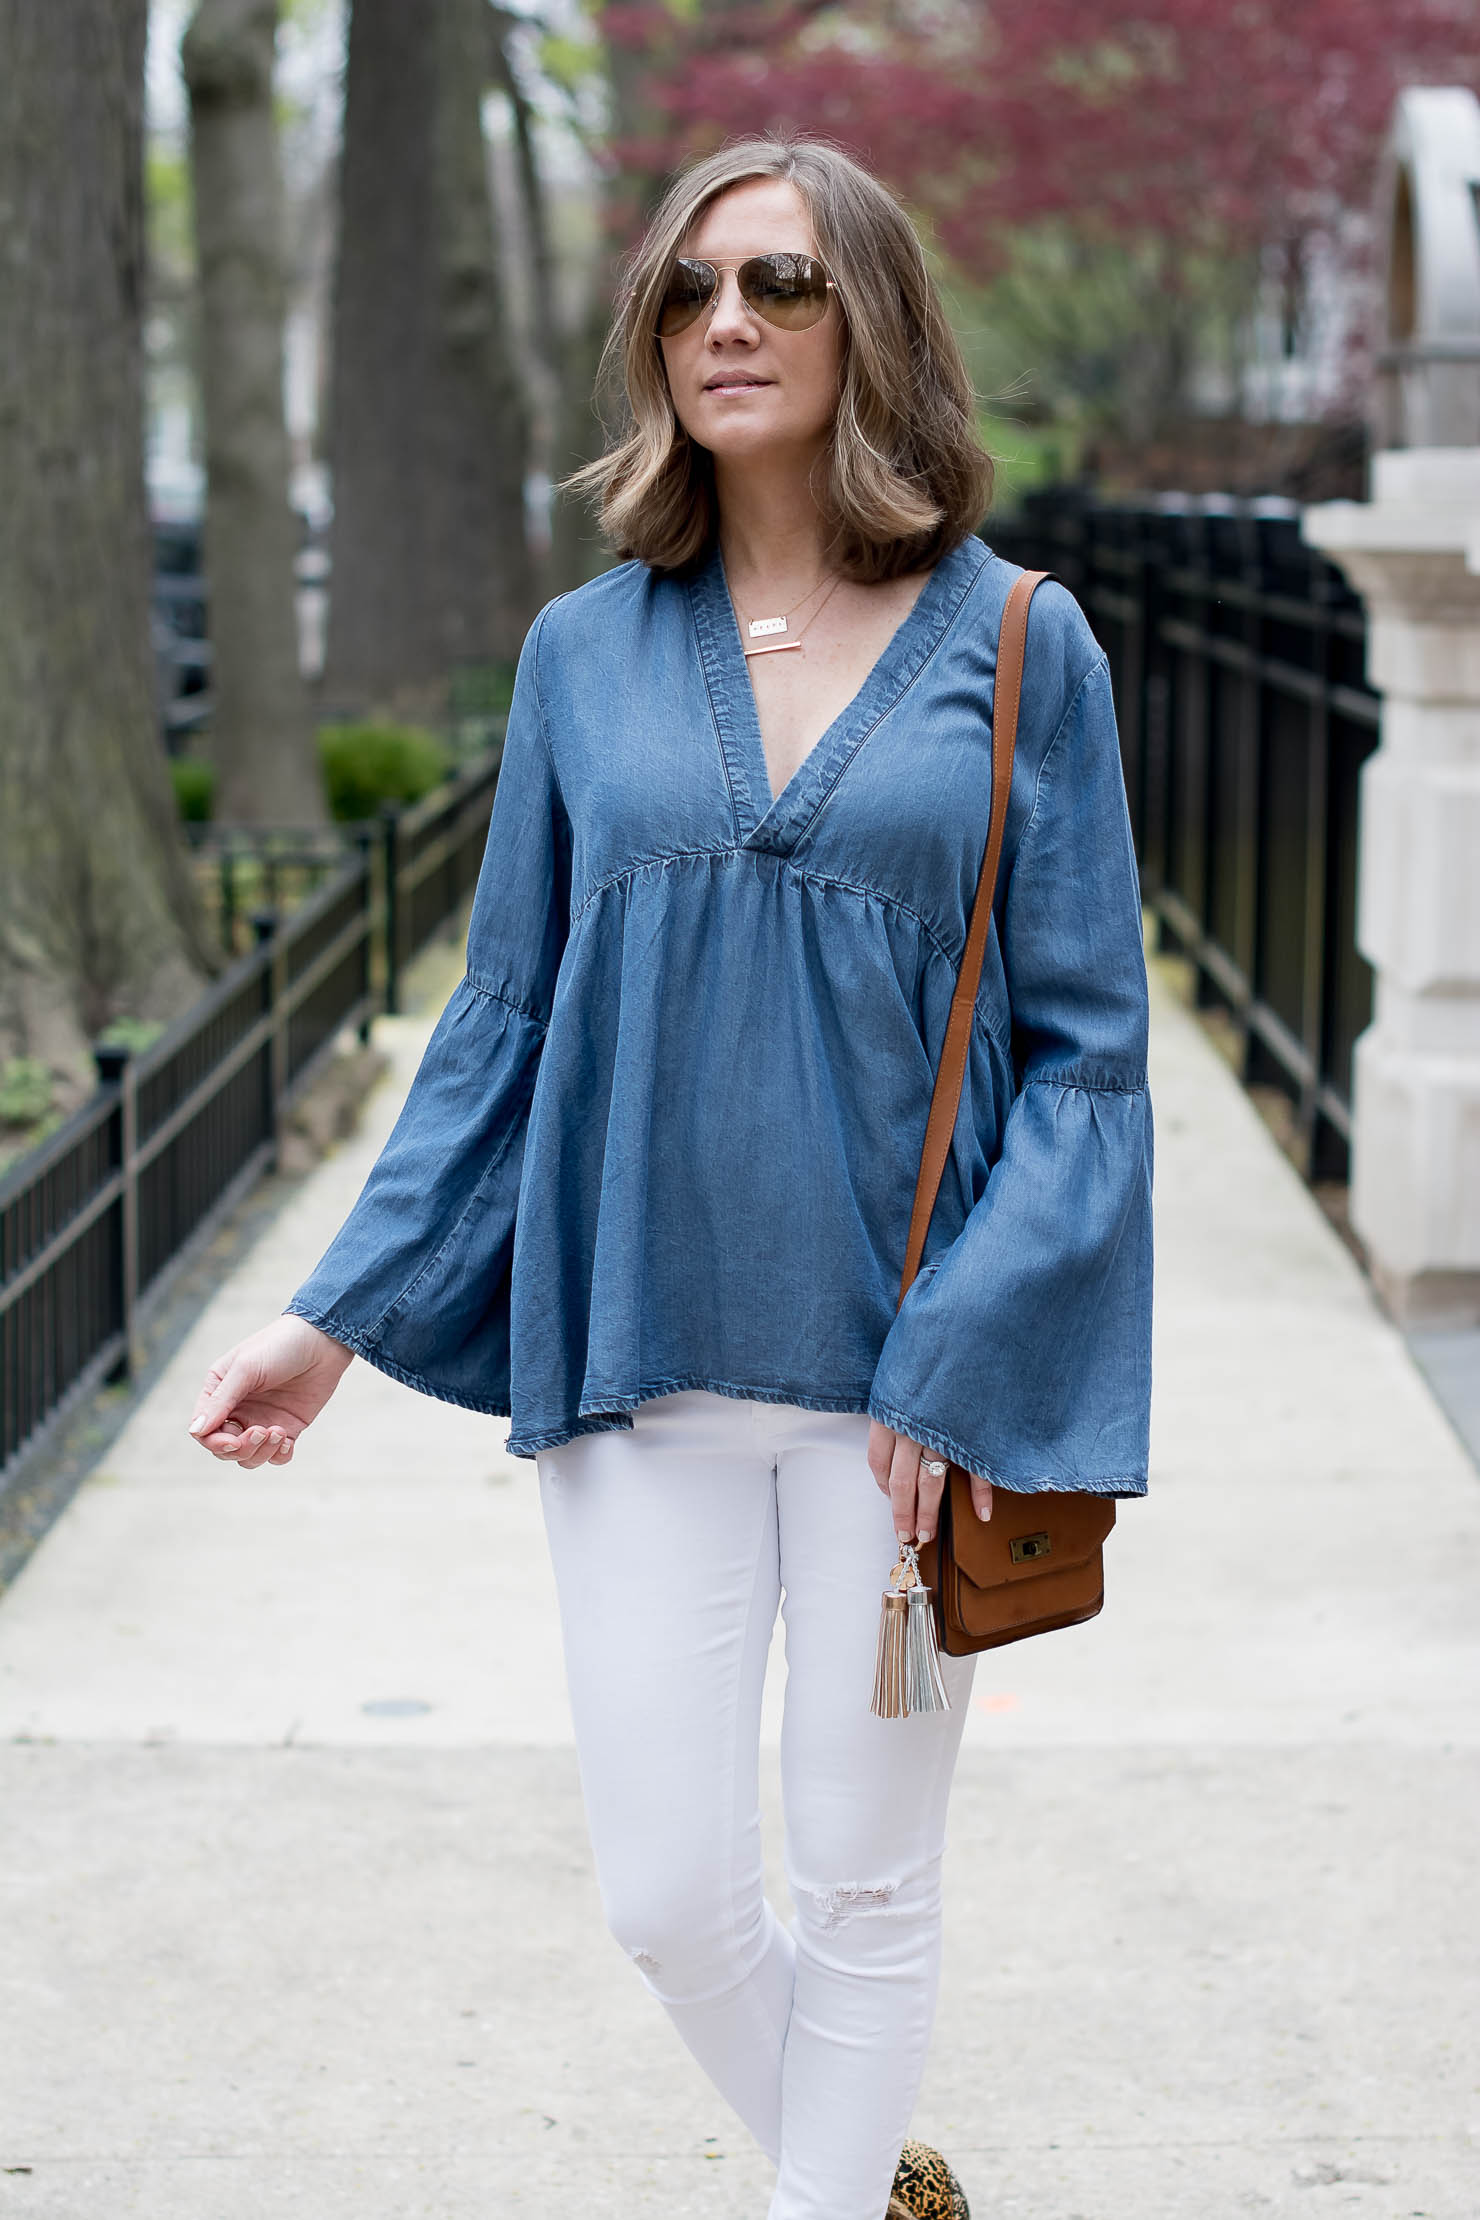 e8d1ac80a01 transitioning-white-jeans-for-fall-hm-denim-bell-sleeve-top -matisse-leopard-booties-metallic-bag-tassel-charms-5